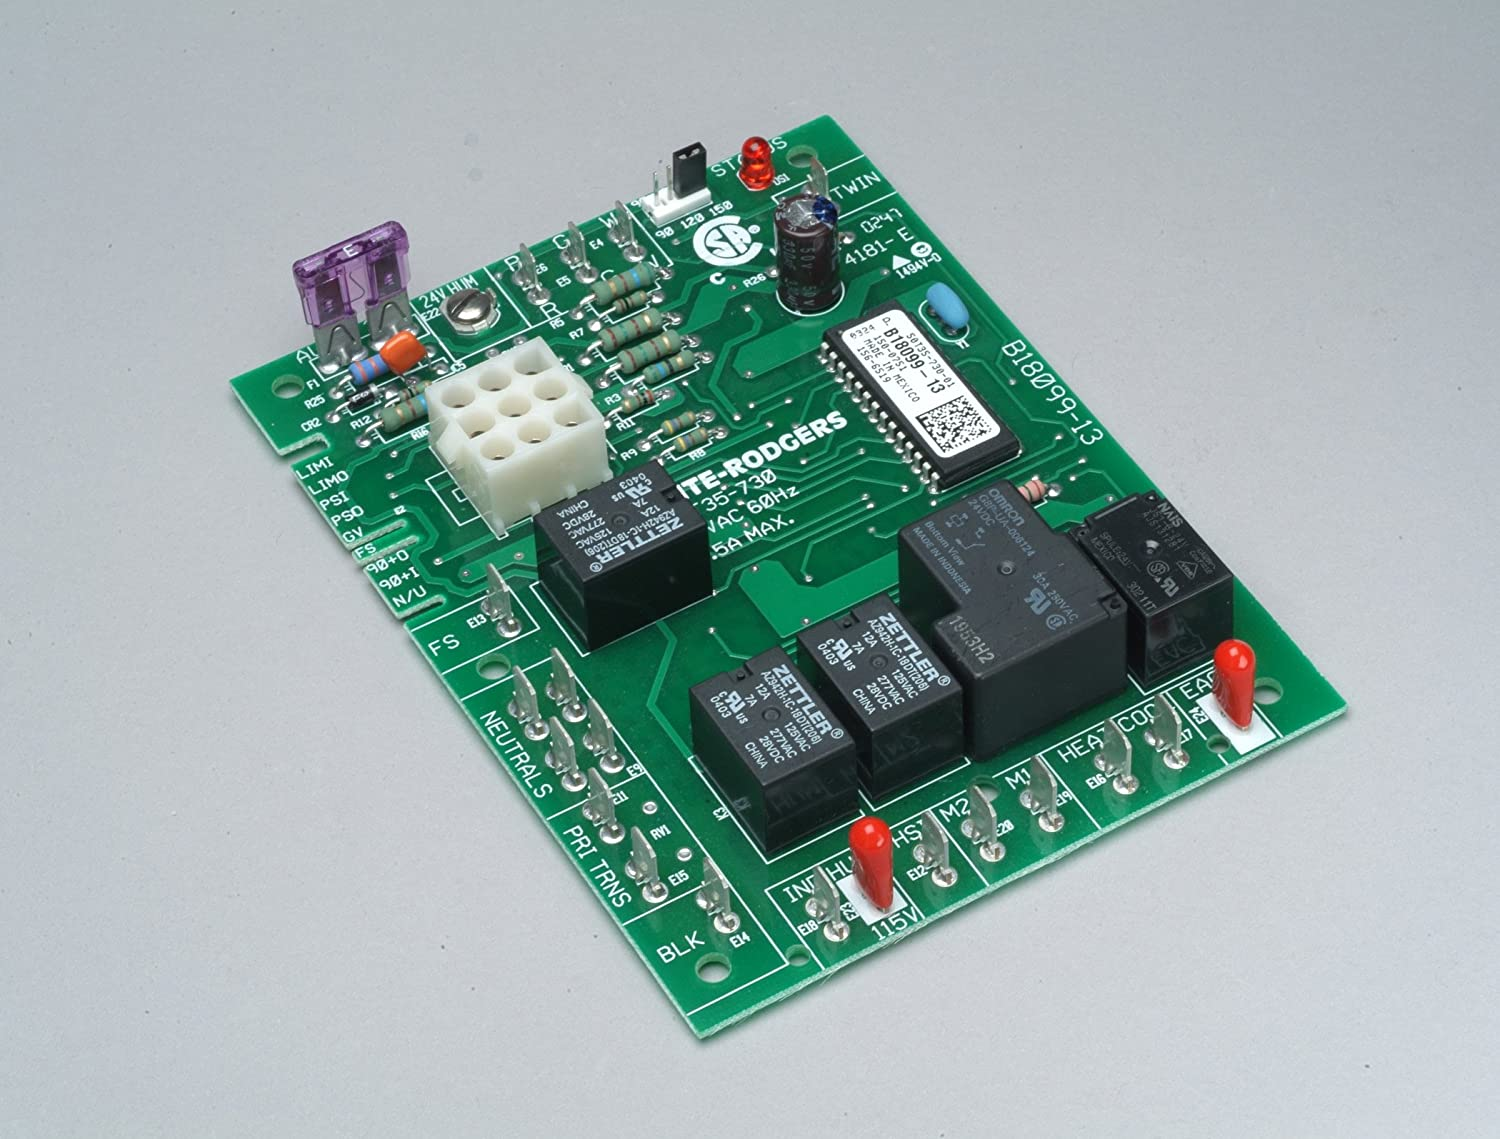 81dNr 29tyL._SL1500_ white rodgers 50t35 743 white rodgers goodman circuit board 50t35-743 wiring diagram at gsmx.co